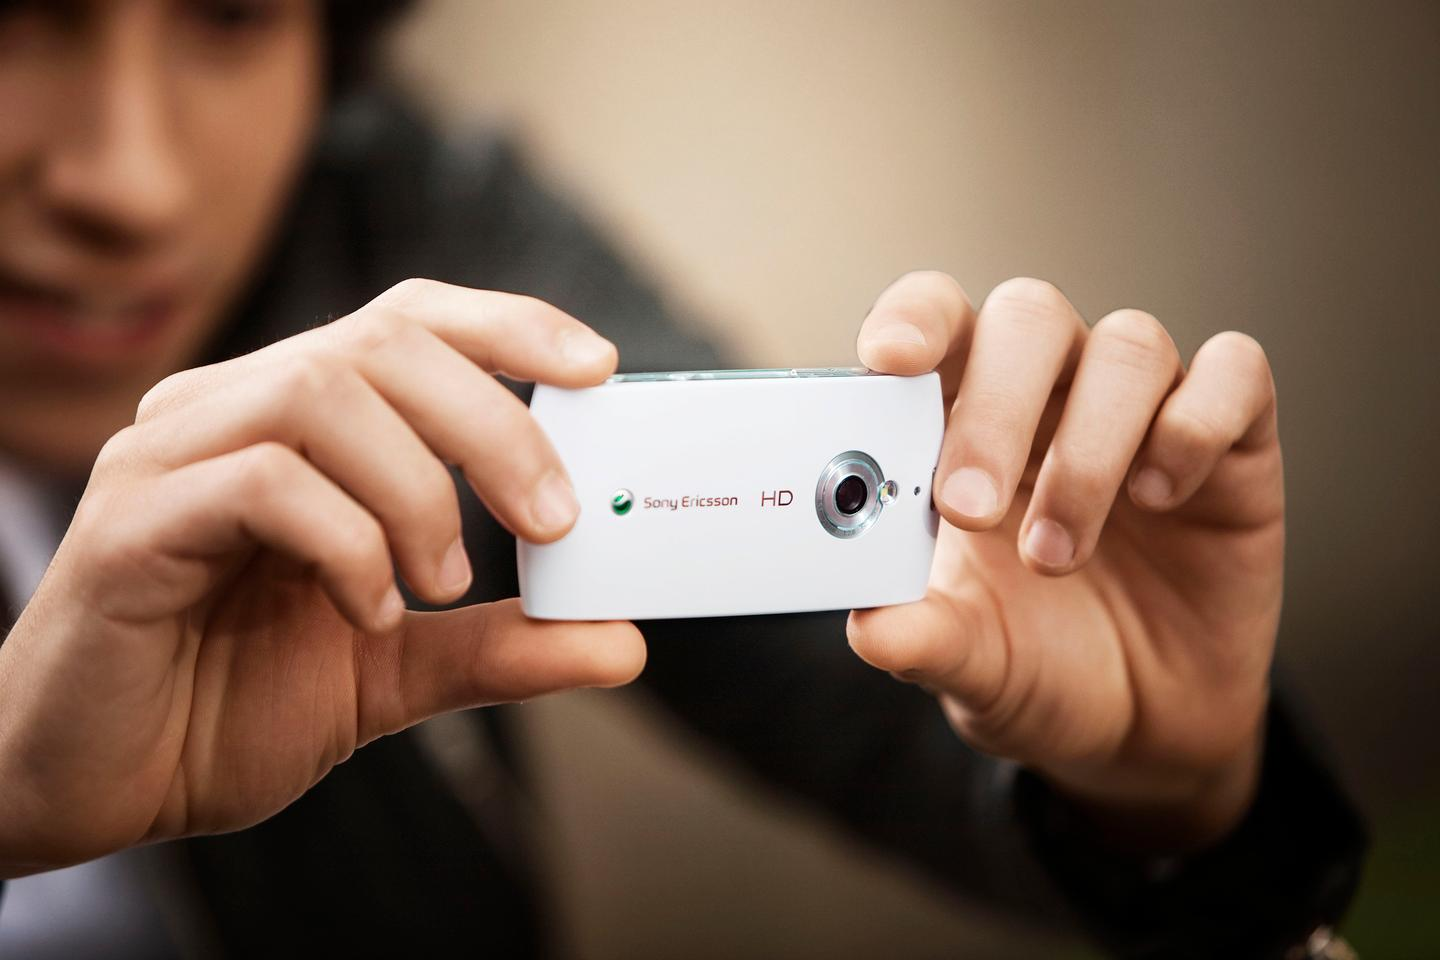 The Vivaz lets users capture and upload HD video